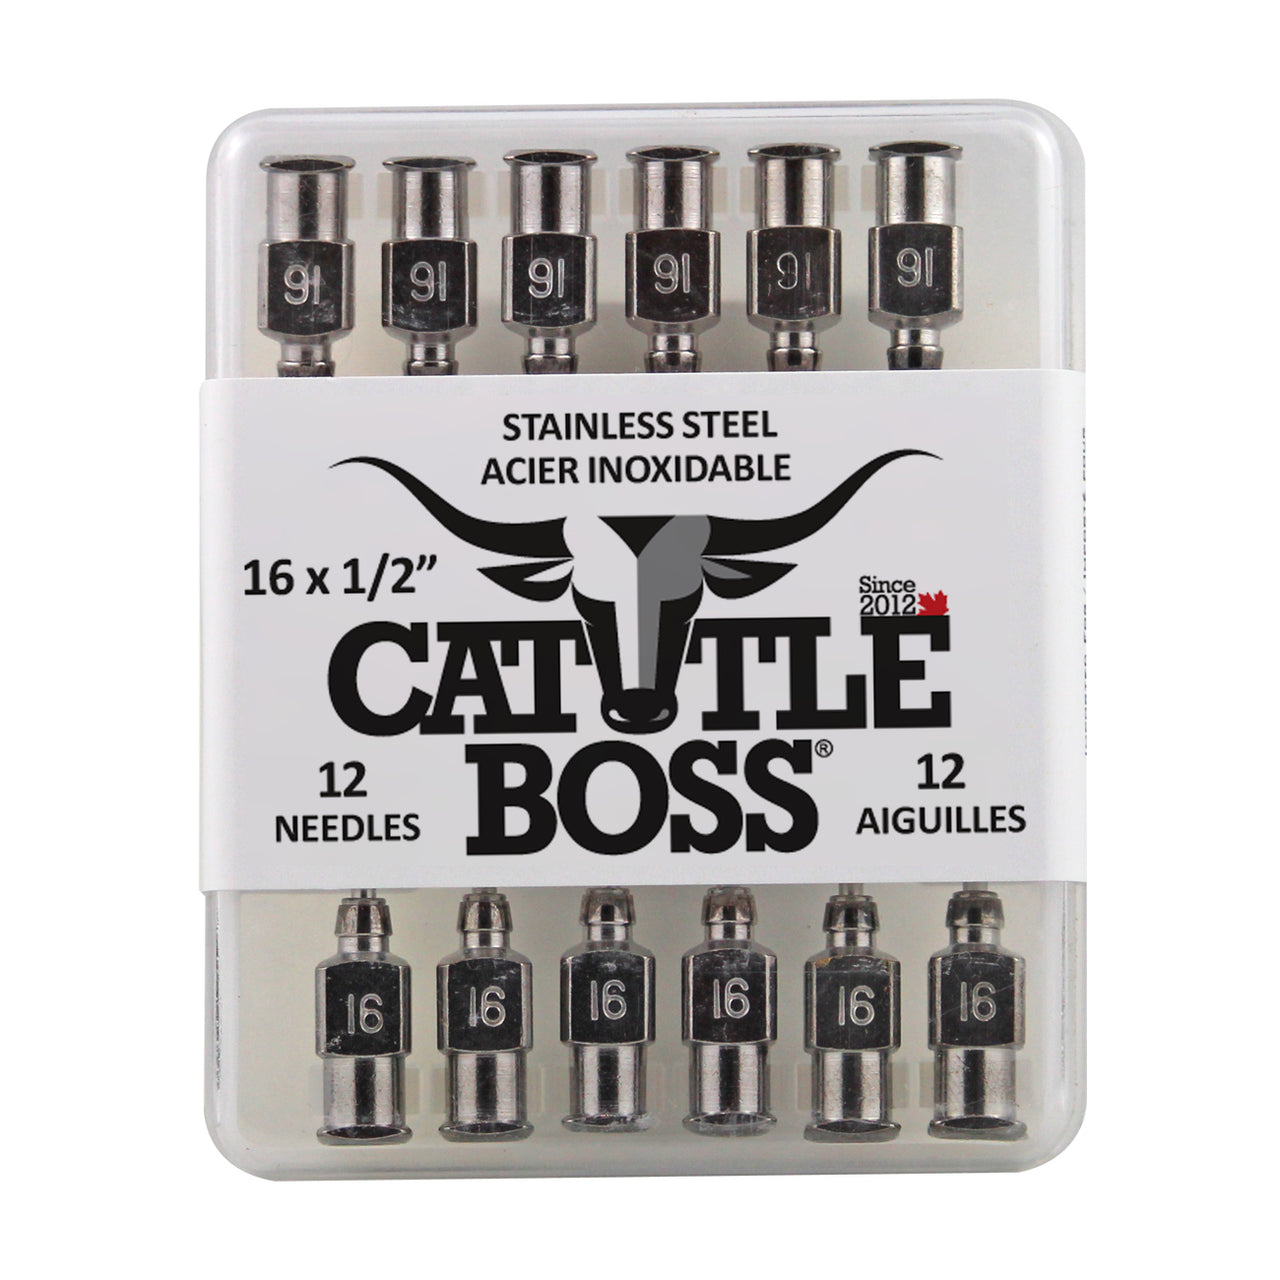 Cattle Boss Stainless Steel Hub Needle (12 Pack) 16X1/2 - Drug Administration Cattle Boss - Canada